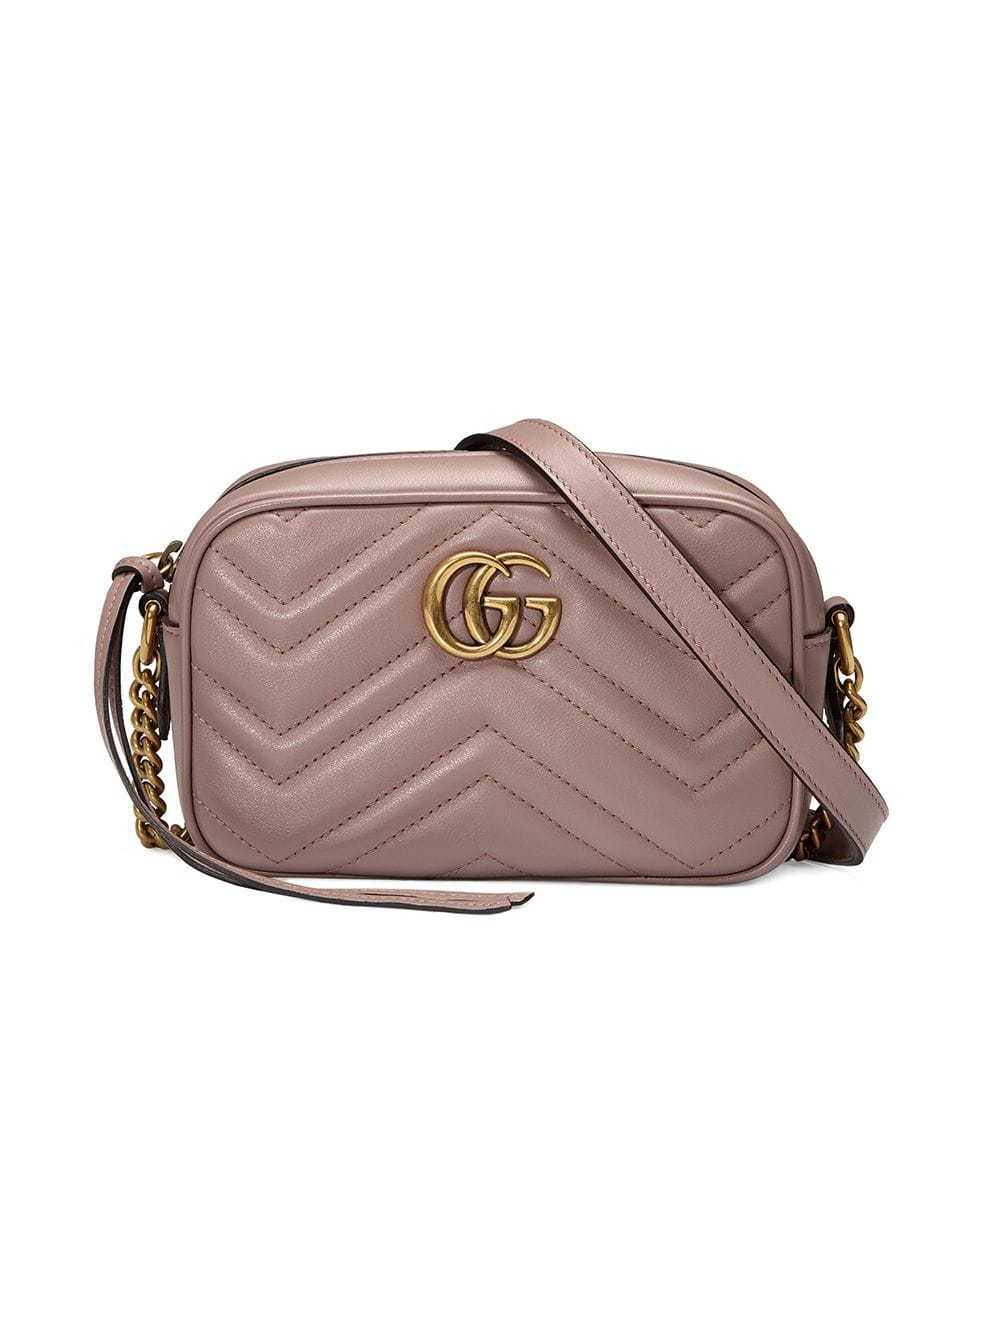 Gg Marmont Mini Leather Crossbody Bag